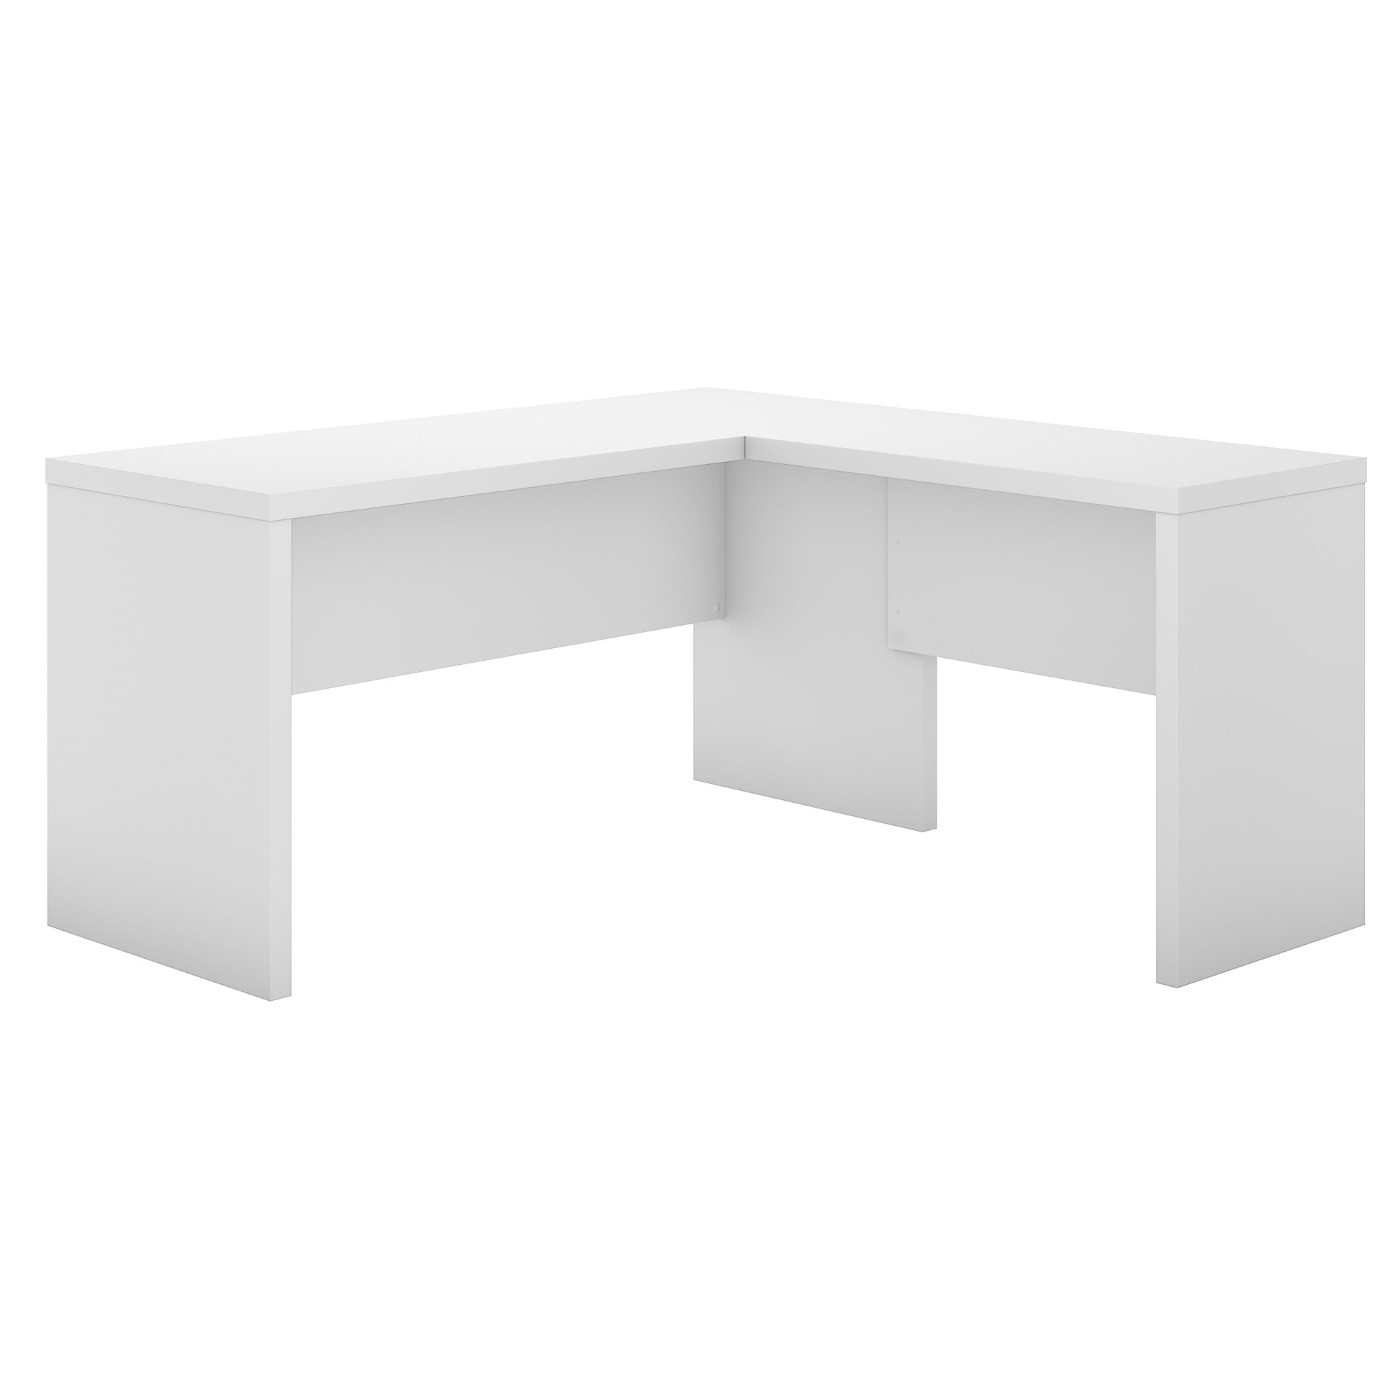 OFFICE BY KATHY IRELAND� ECHO L SHAPED DESK. FREE SHIPPING